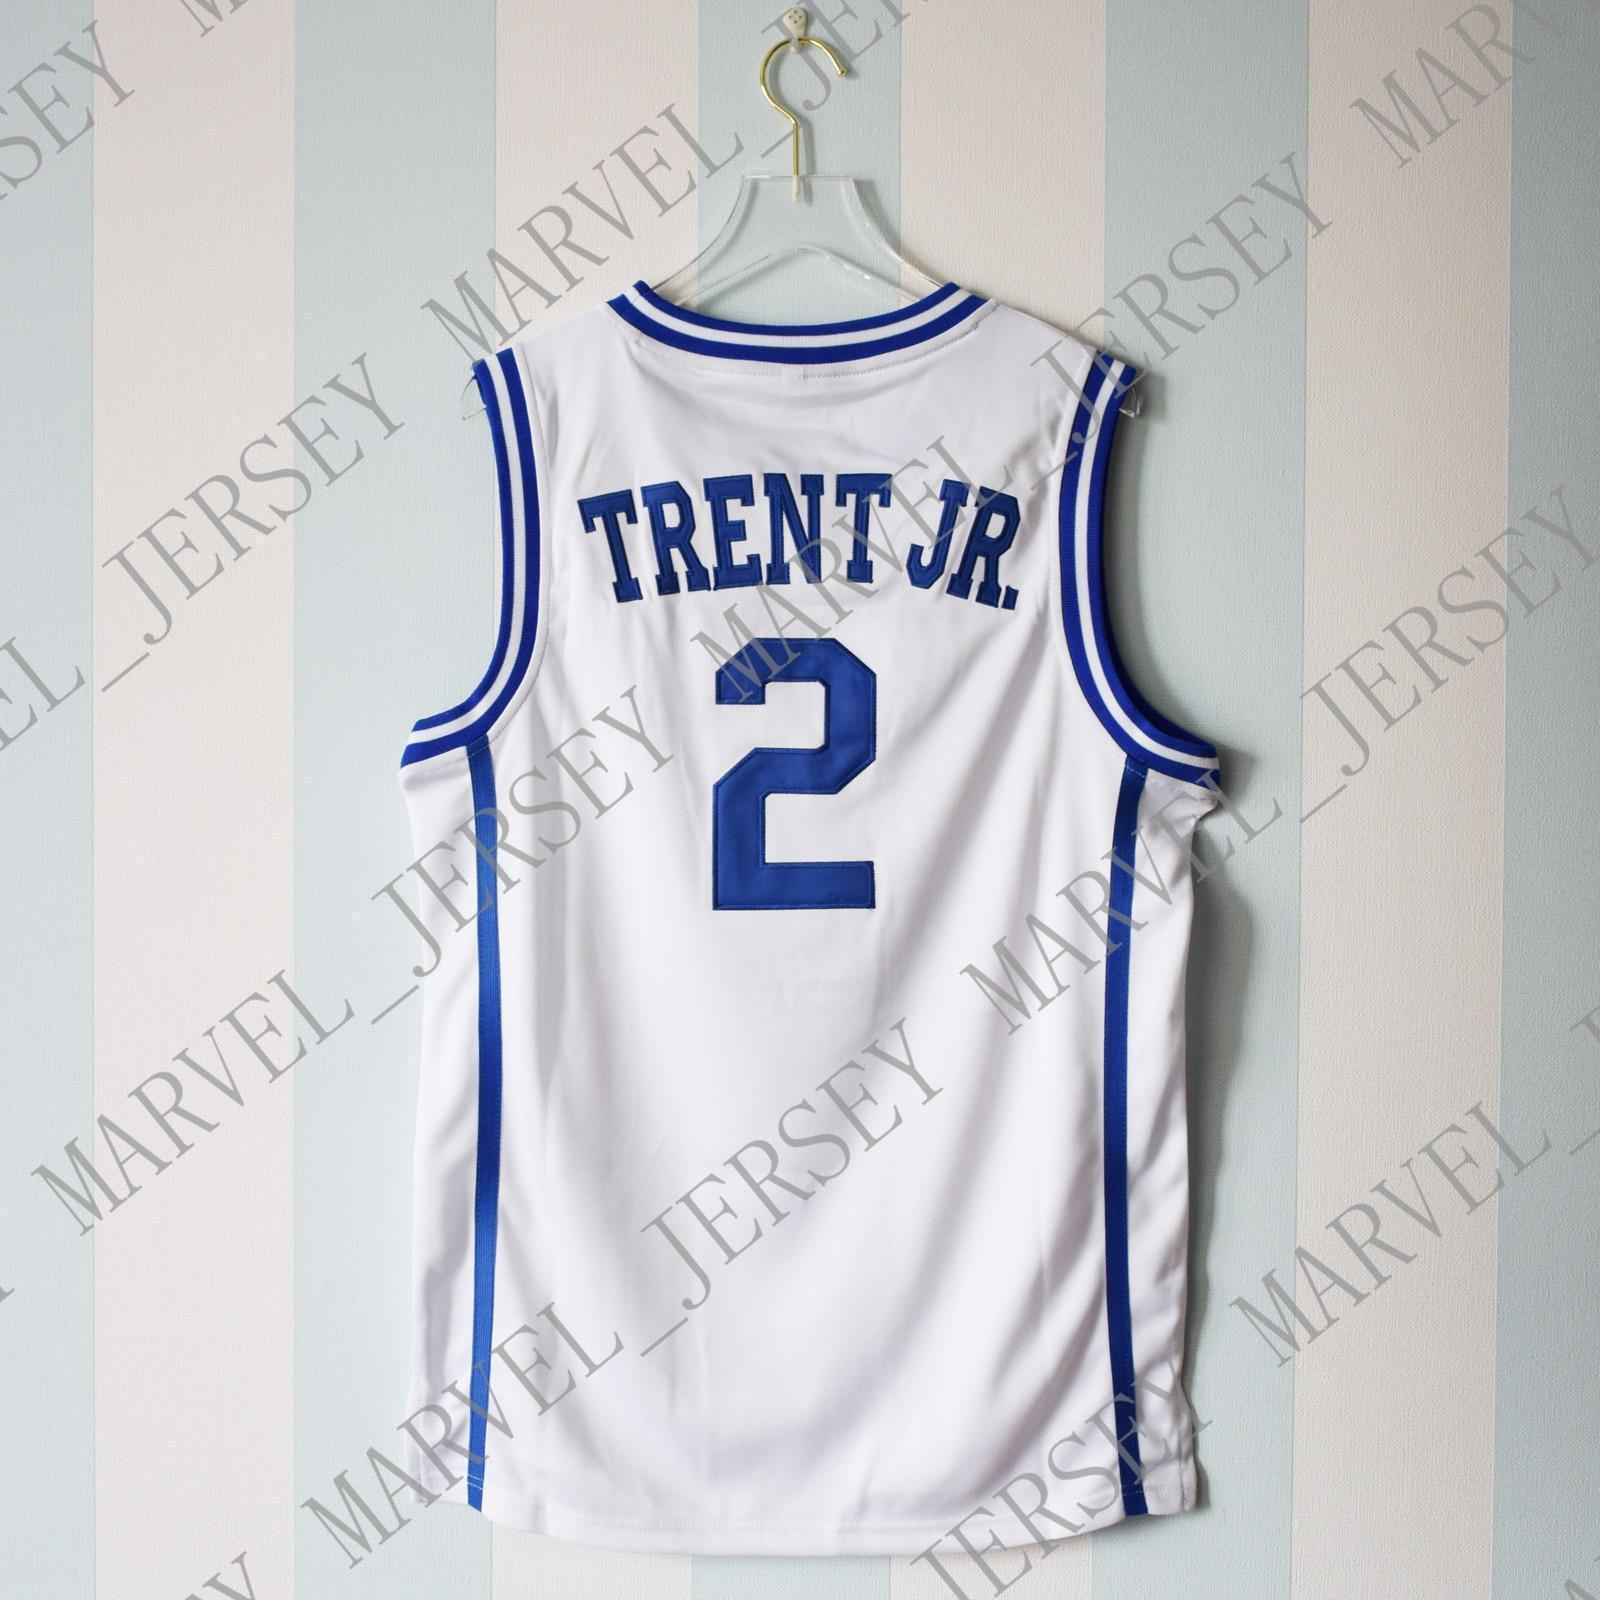 2019 Cheap Custom Gary Trent Jr.  2 Jersey Duke Blue Devils Basketball  White Jersey Stitch Customize Any Number Name MEN WOMEN YOUTH XS 5XL From  ... 18a1b5a18